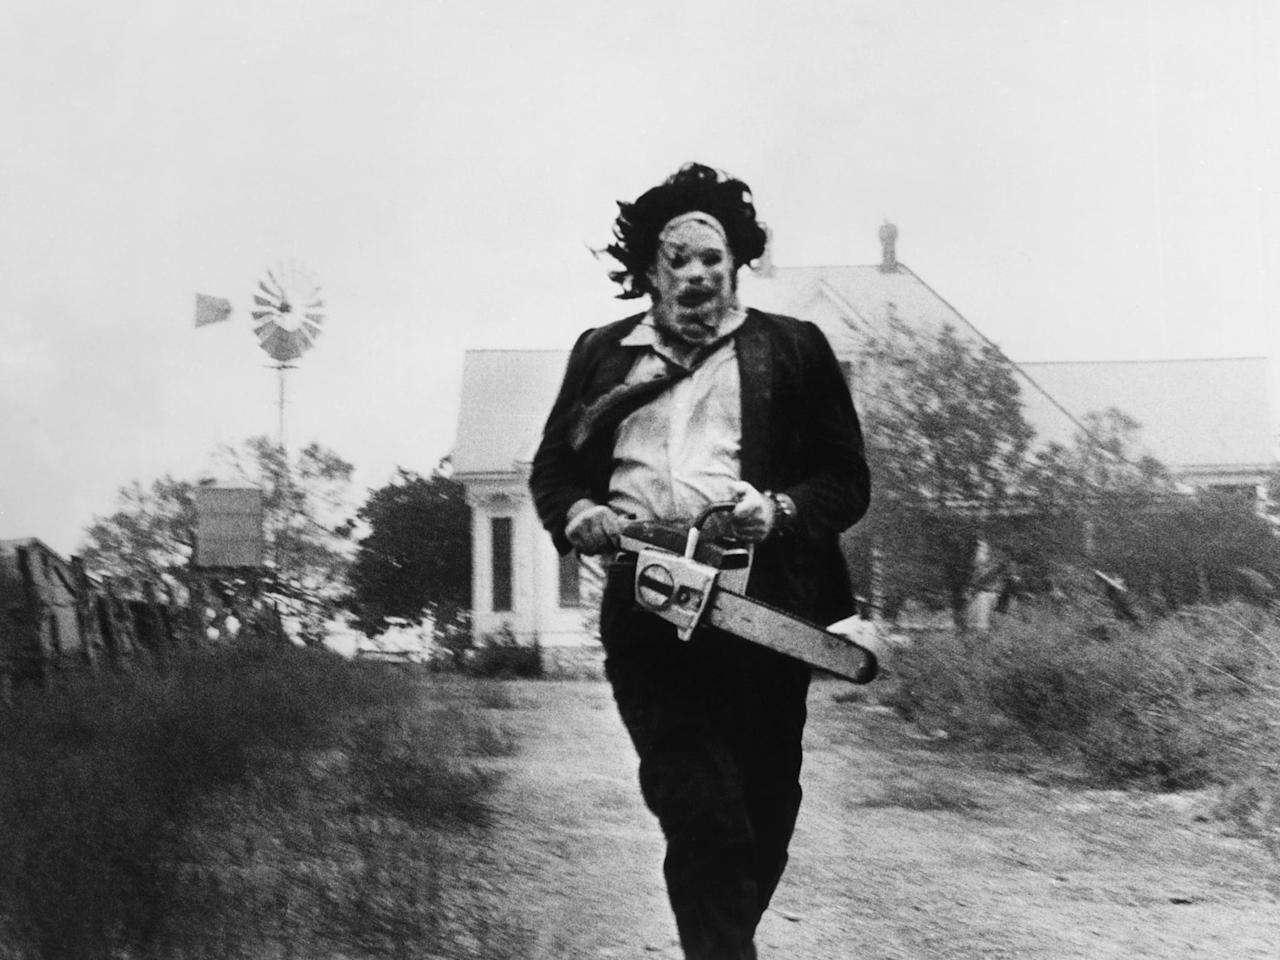 """<p>Writer-director Tobe Hooper definitely borrowed elements from Gein's story for the character of Leatherface in <a href=""""https://www.popsugar.com/entertainment/Texas-Chainsaw-Massacre-True-Story-43895749"""" target=""""_blank"""" class=""""_e75a791d-denali-editor-page-rtfLink ga-track"""" data-ga-category=""""Related"""" data-ga-label=""""https://www.popsugar.com/entertainment/Texas-Chainsaw-Massacre-True-Story-43895749"""" data-ga-action=""""In-Line Links""""><strong>The Texas Chainsaw Massacre</strong></a>. While there was no cannibalistic family in Gein's case, Gein also had skin masks and decor made from human body parts. Like Leatherface, Gein was also easily controlled by his family, especially his mother.</p>"""